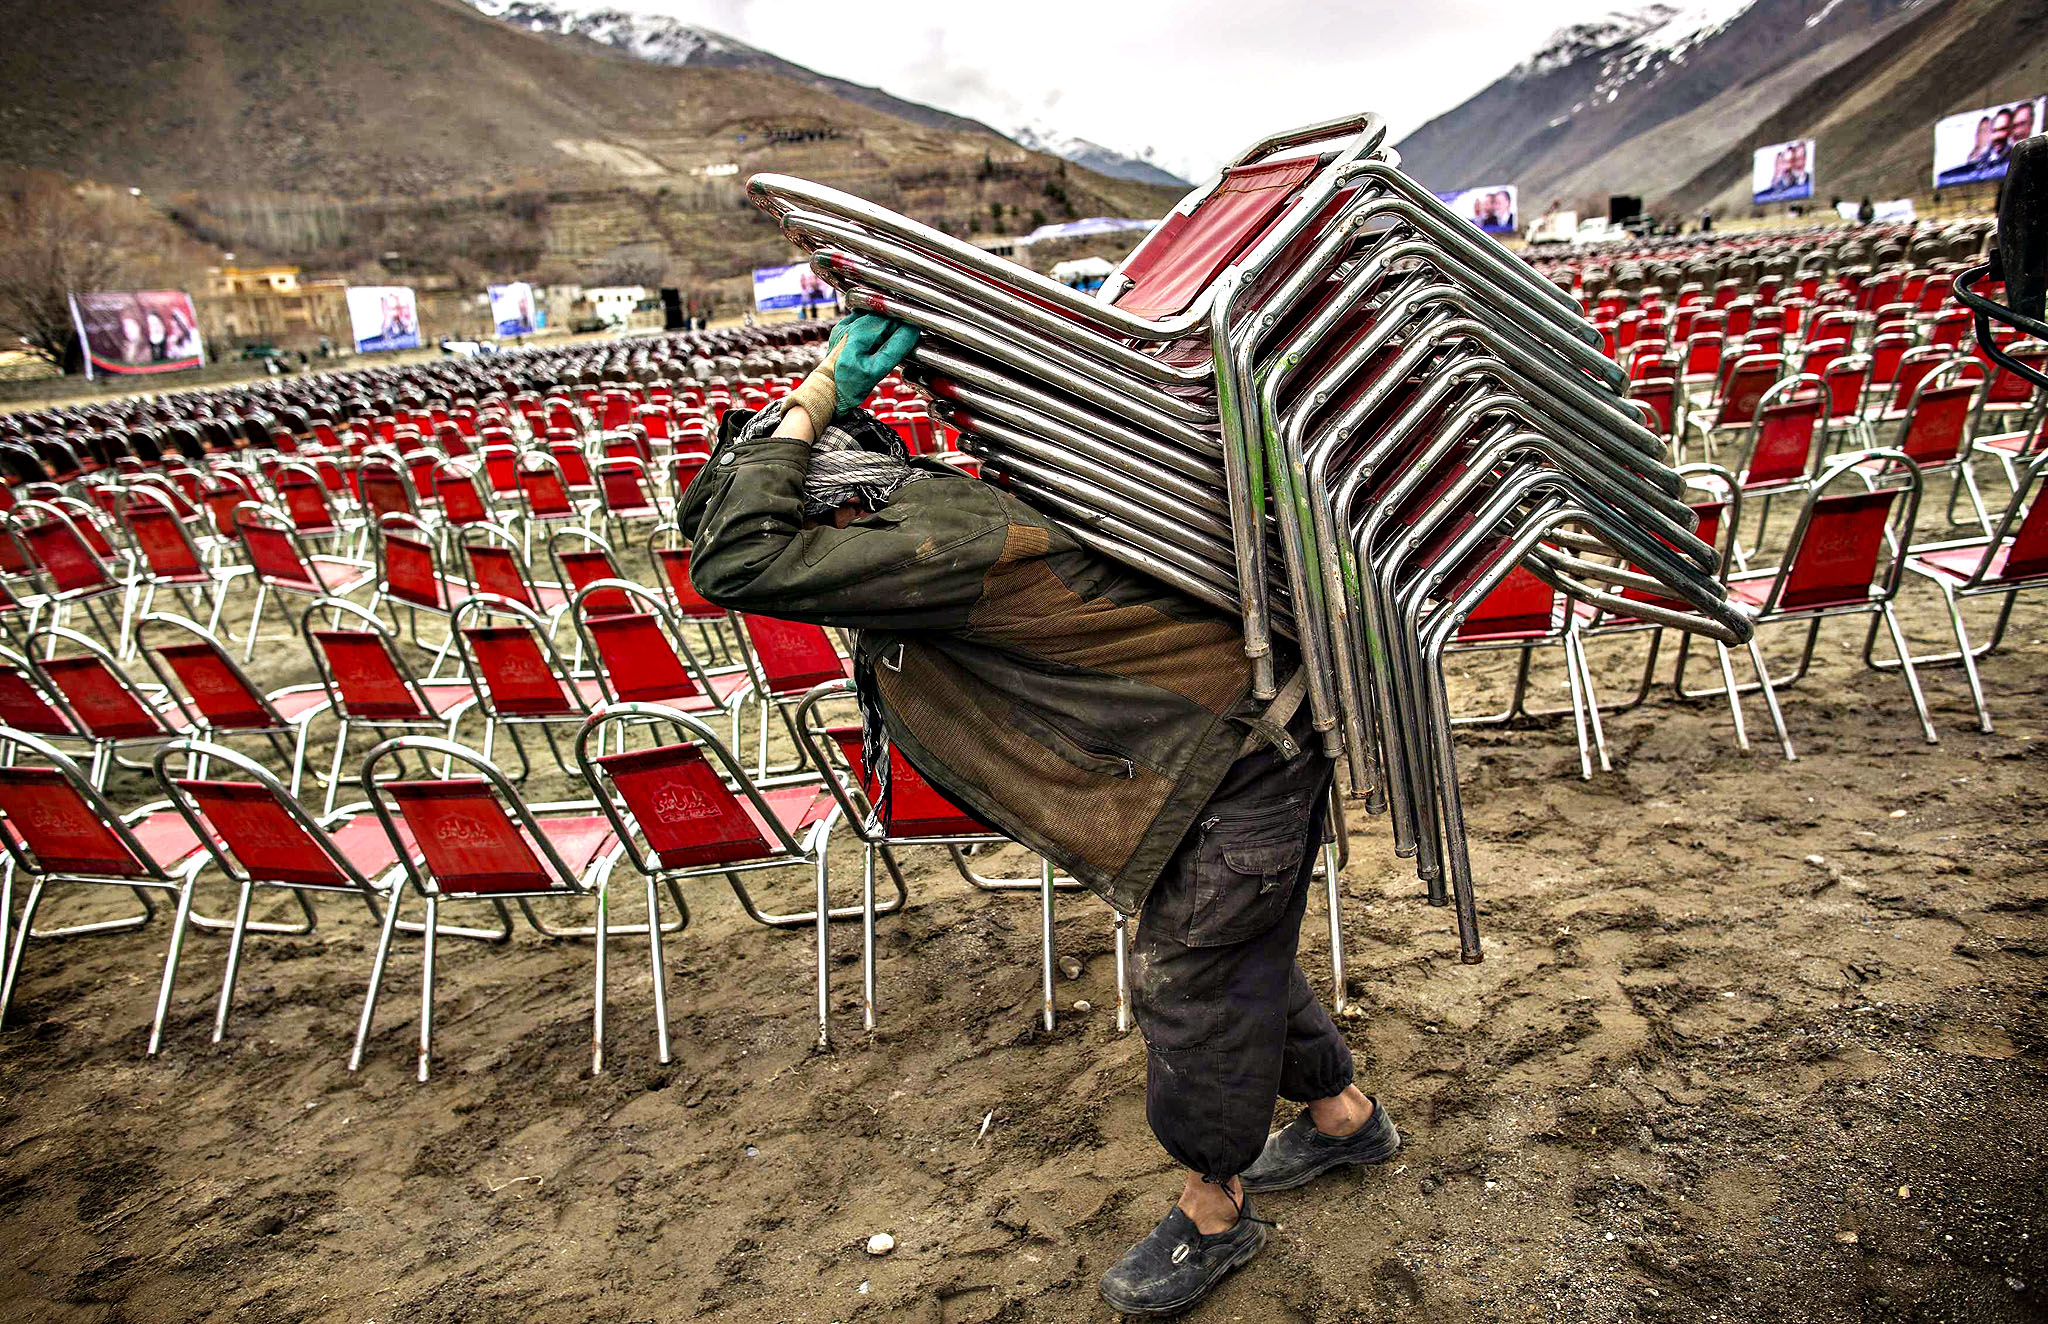 A supporter of Afghan presidential candidate Zalmai Rassoul carries chairs as he prepares for an election rally in Panshir, northern Afghanistan, March 28, 2014. Afghan presidential elections will be held on April 5.